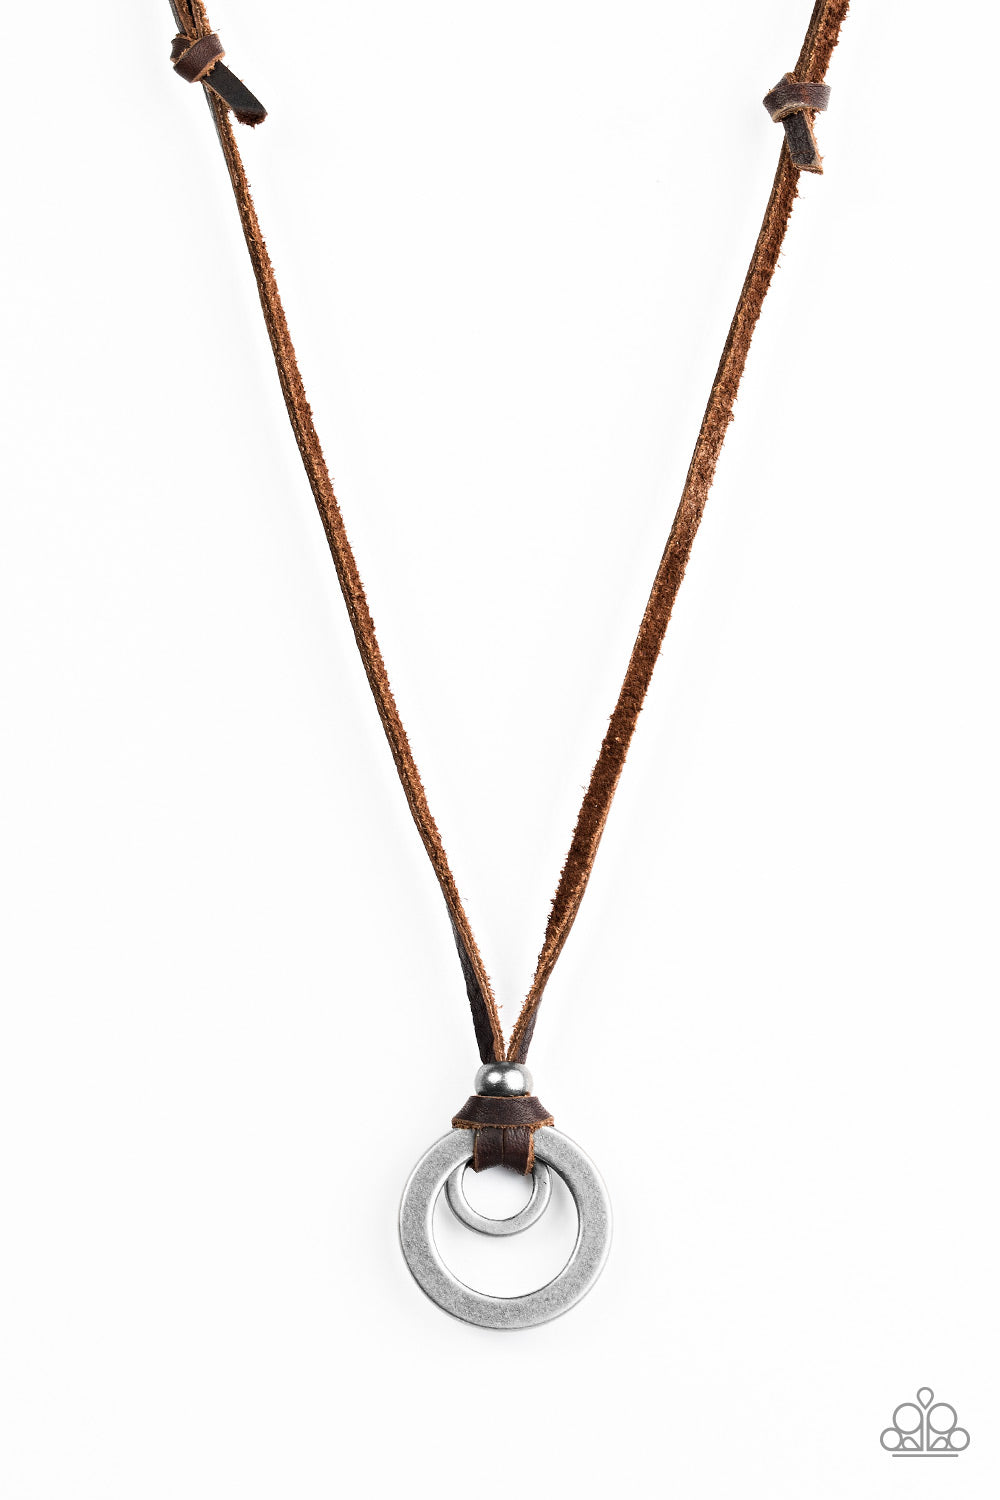 Get To High Ground - Brown - Leather Necklace - Uniquely Urban